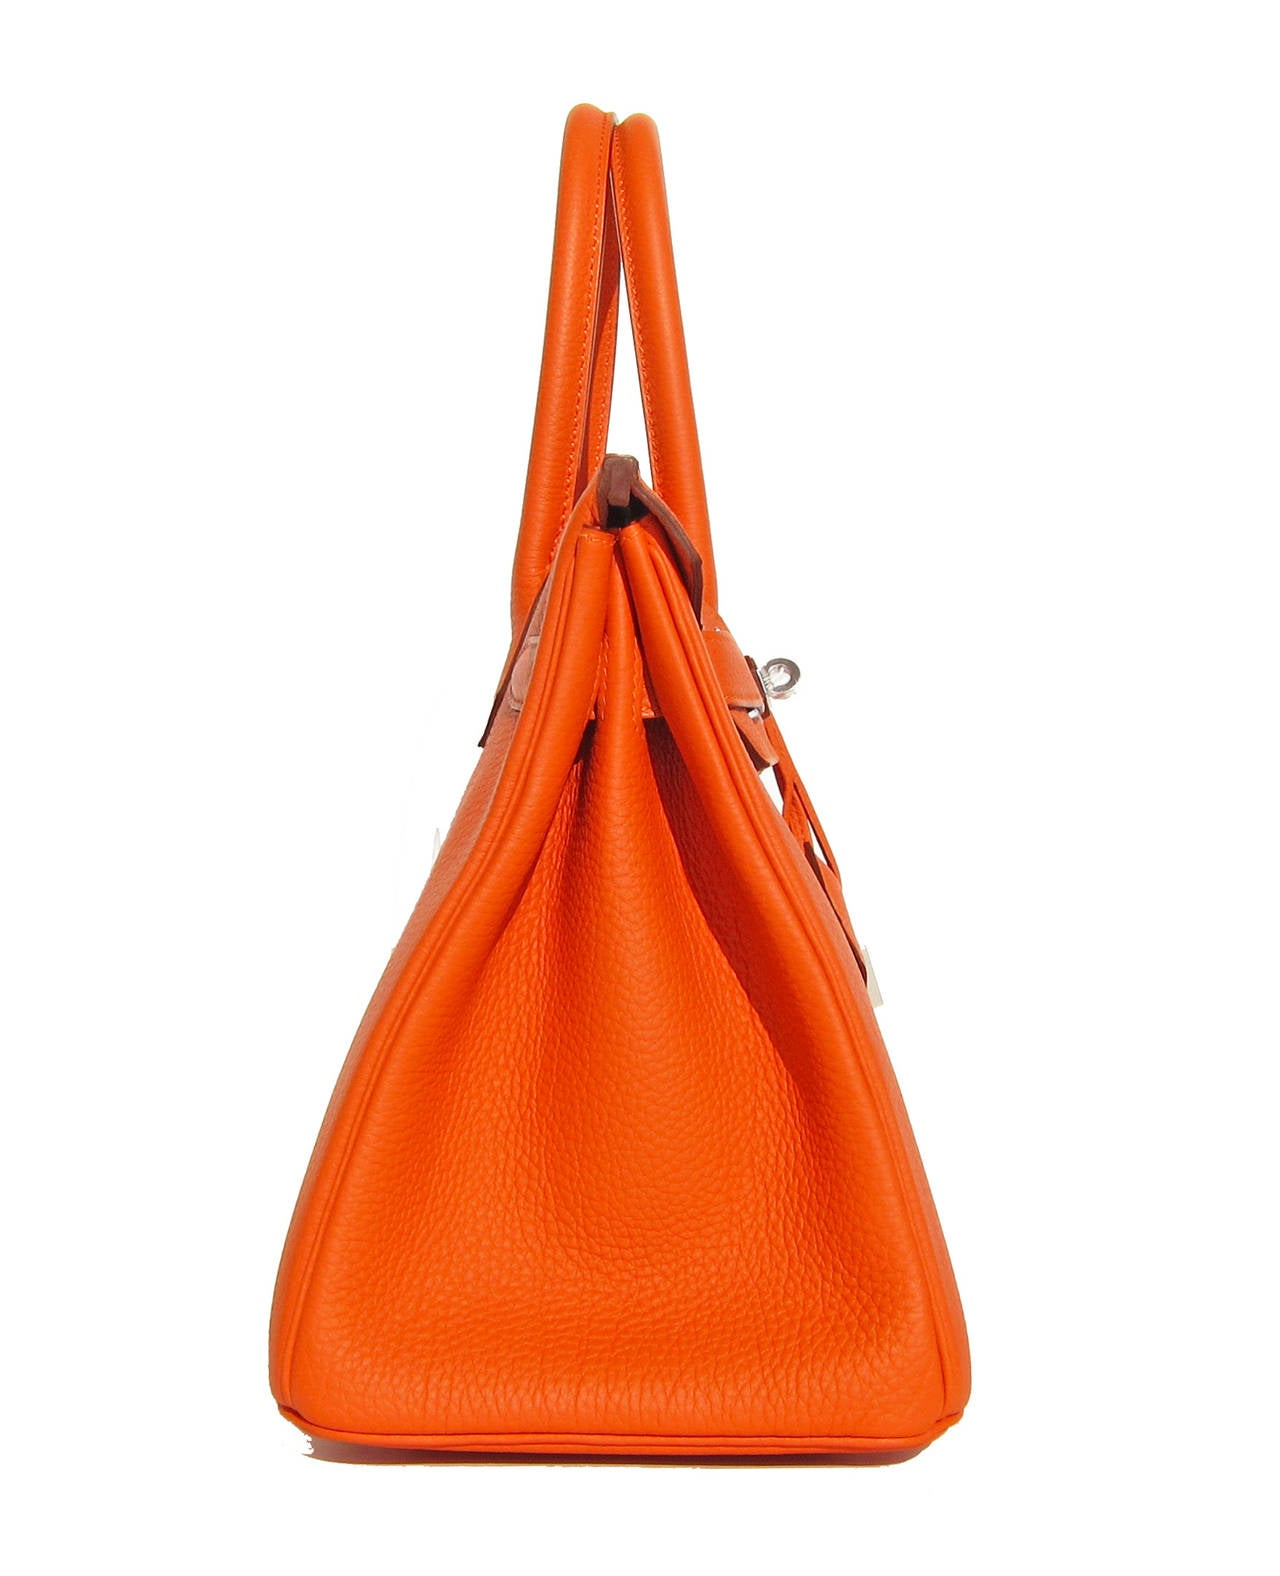 Hermes Feu Orange 30cm Togo Birkin Palladium Insane at 1stdibs